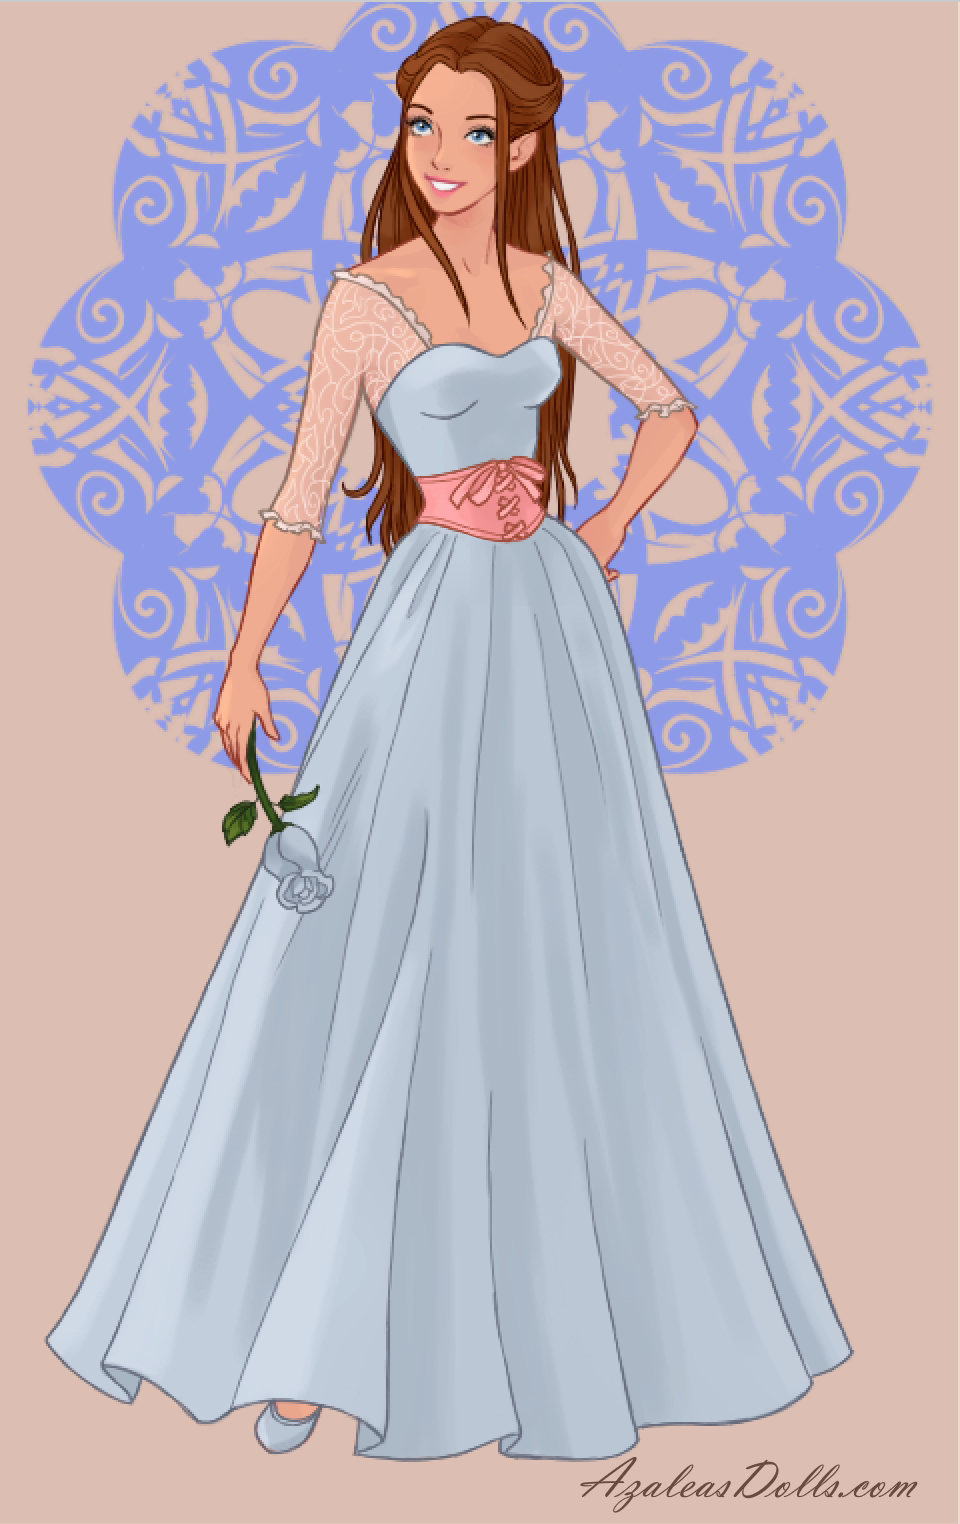 Wedding Dress Designers Game.Erika From Barbie As The Princess And The Pauper In Wedding Dress